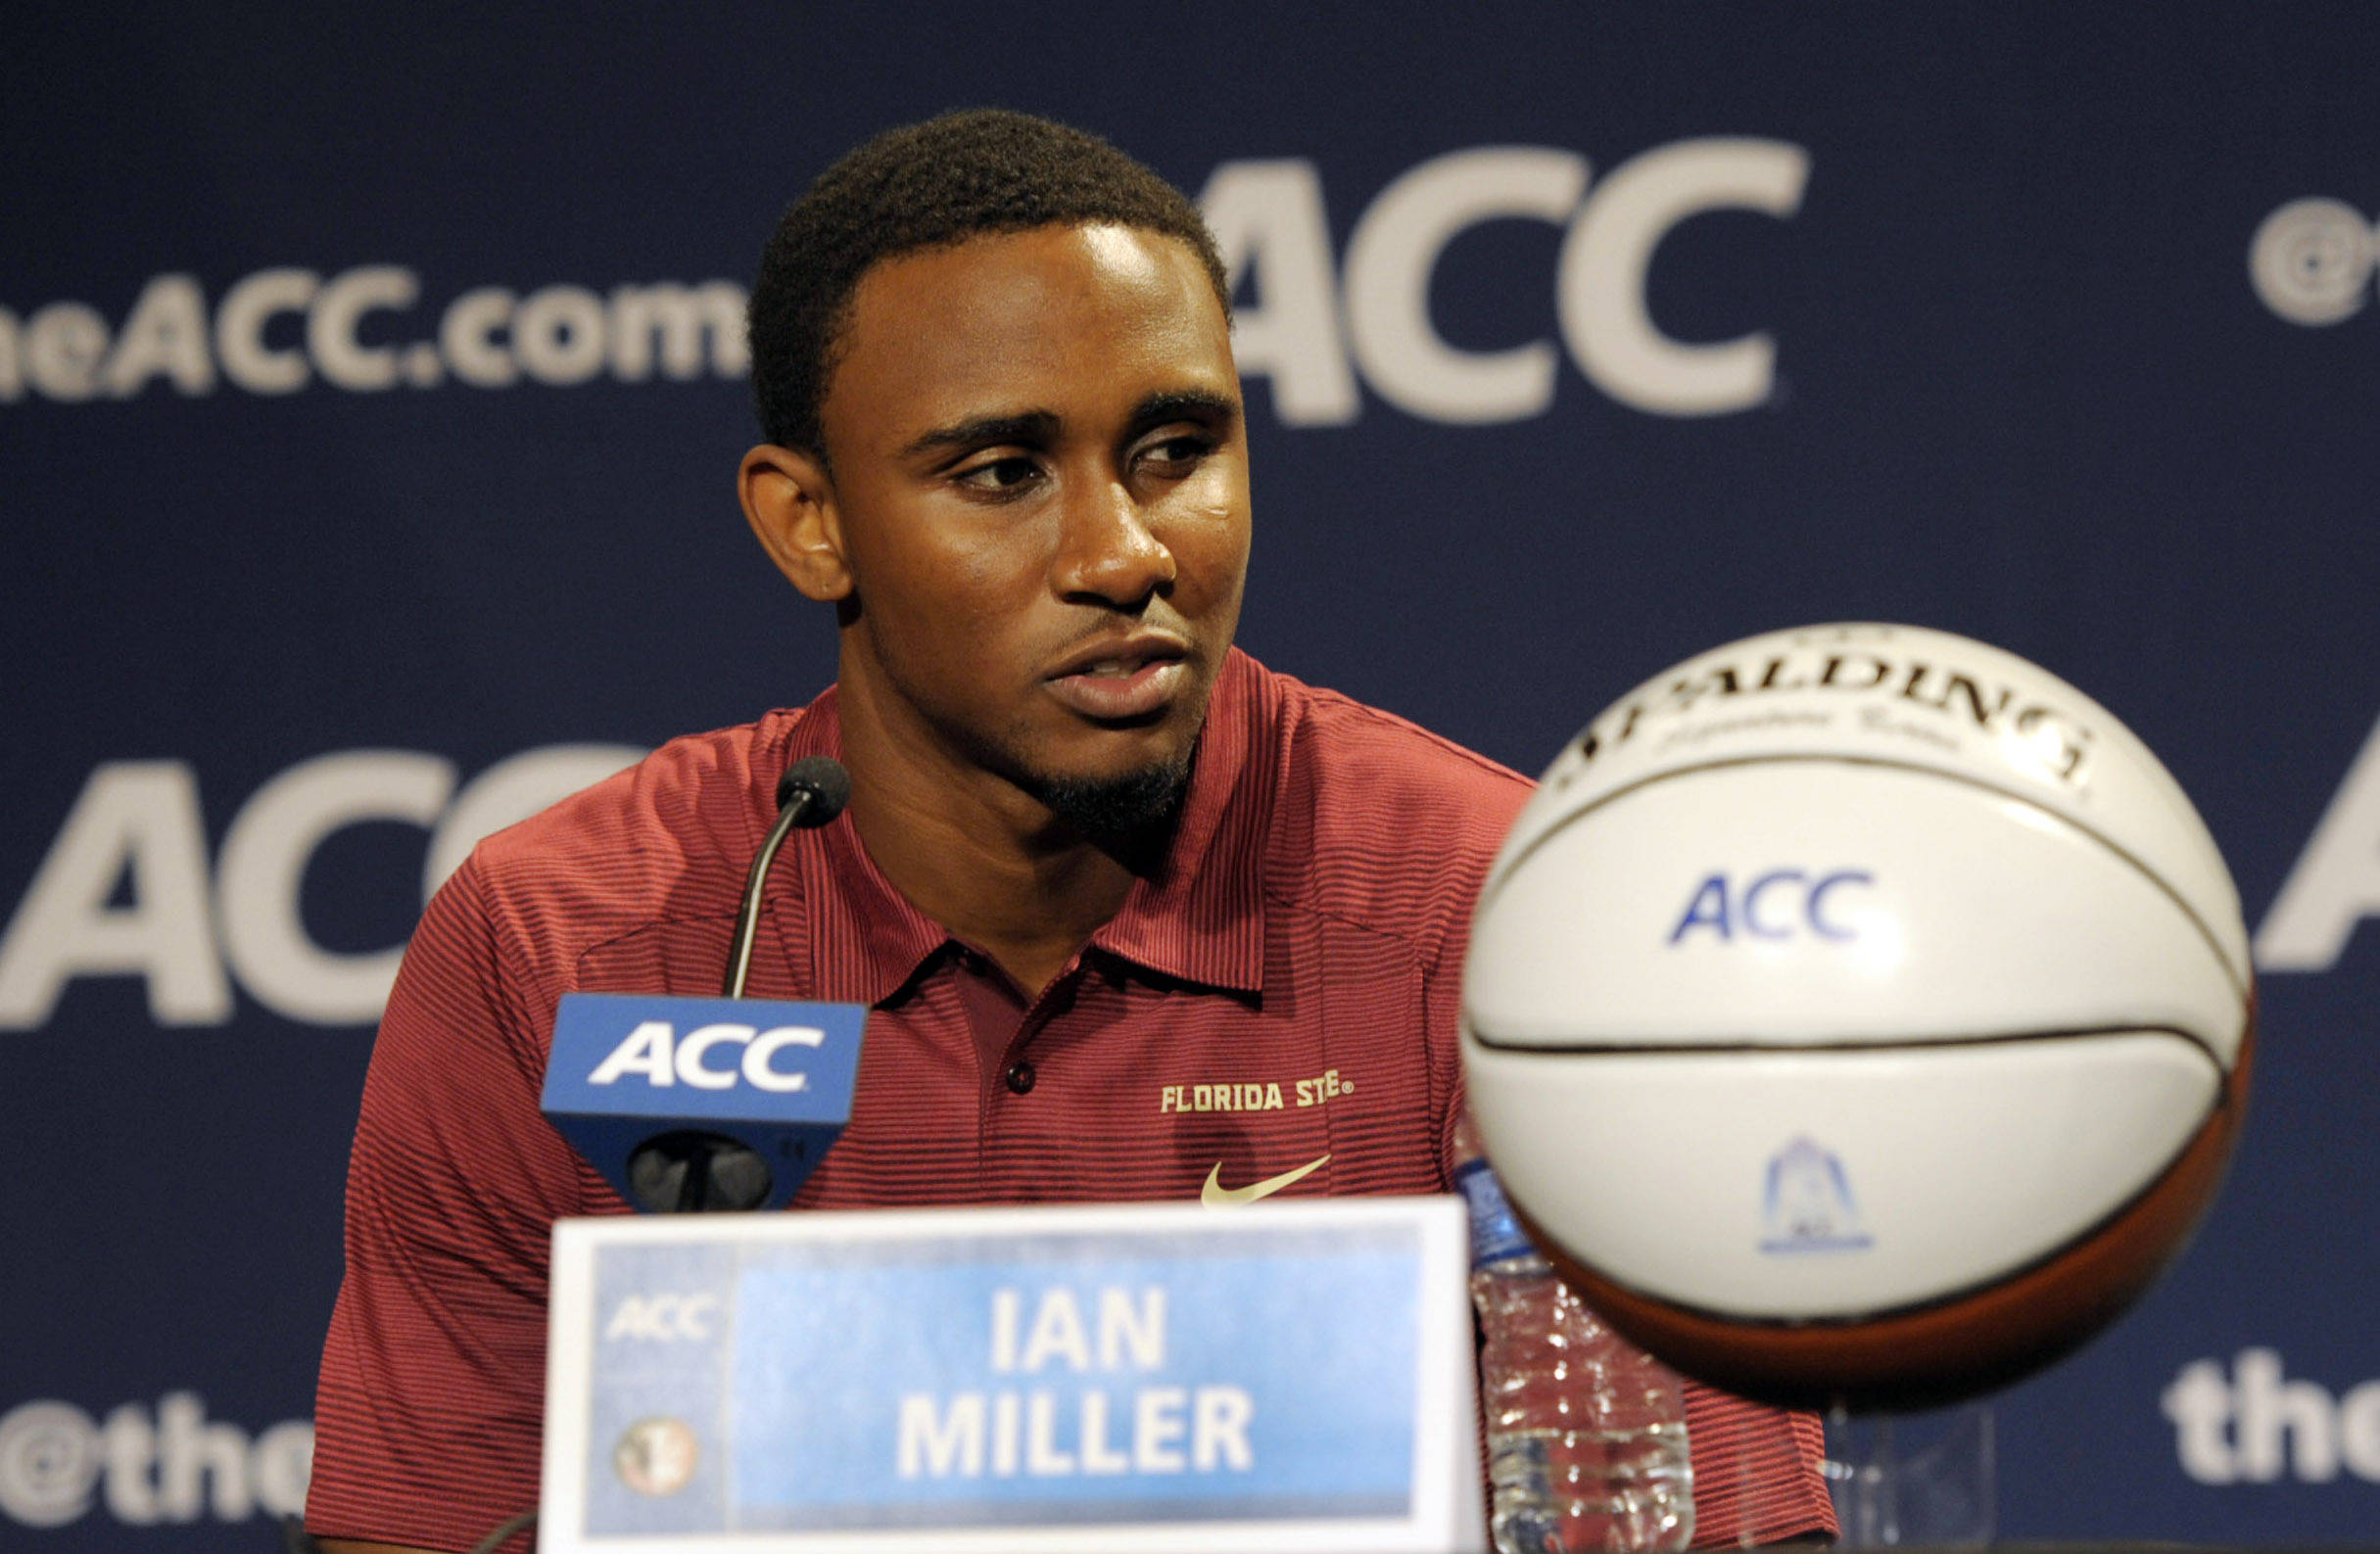 Florida State Seminoles guard Ian Miller addresses the media during the ACC basketball media day at The Ritz-Carlton. (Sam Sharpe-USA TODAY Sports)